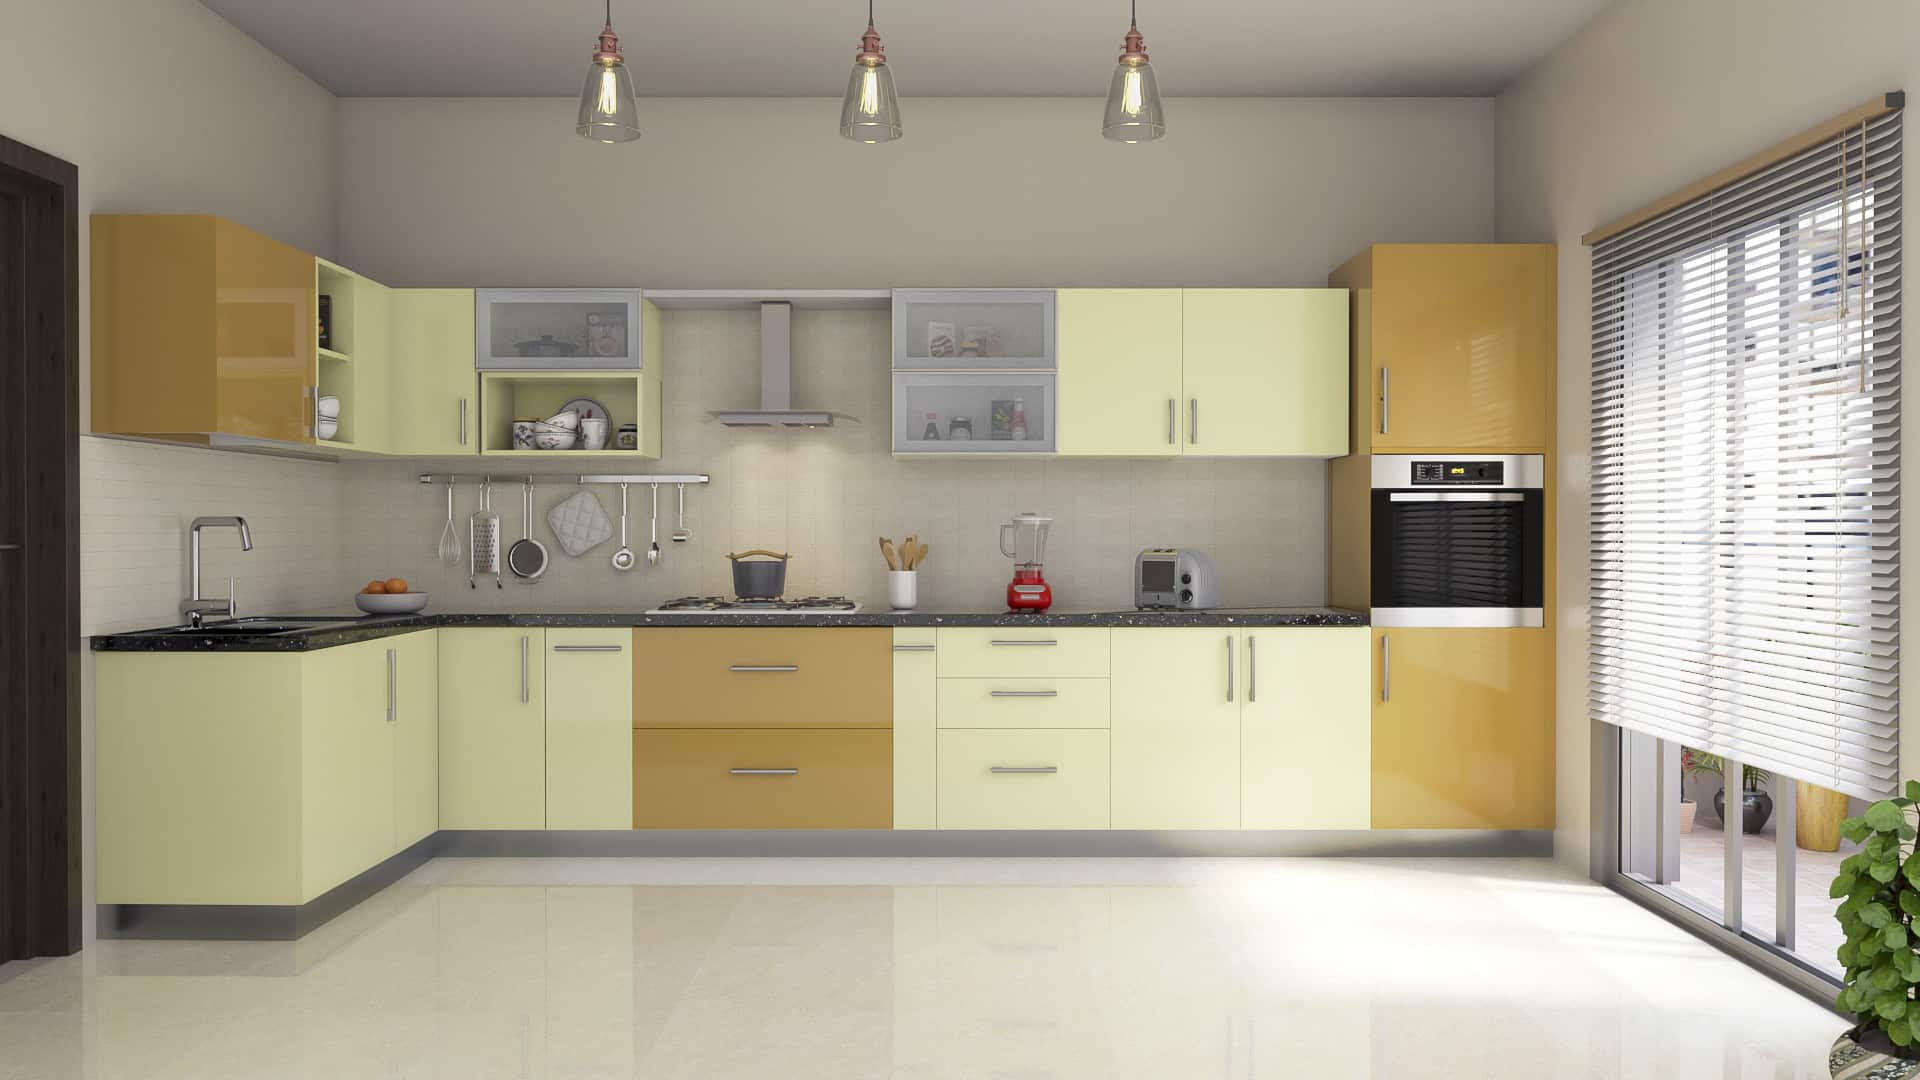 L shaped modular kitchen designs india homelane for L shaped kitchen design ideas india